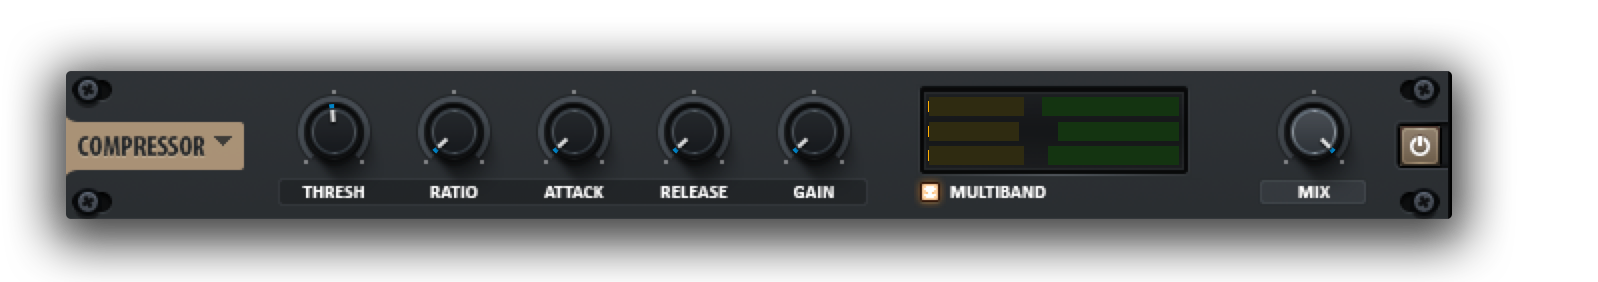 compressor ott tip xfer serum production